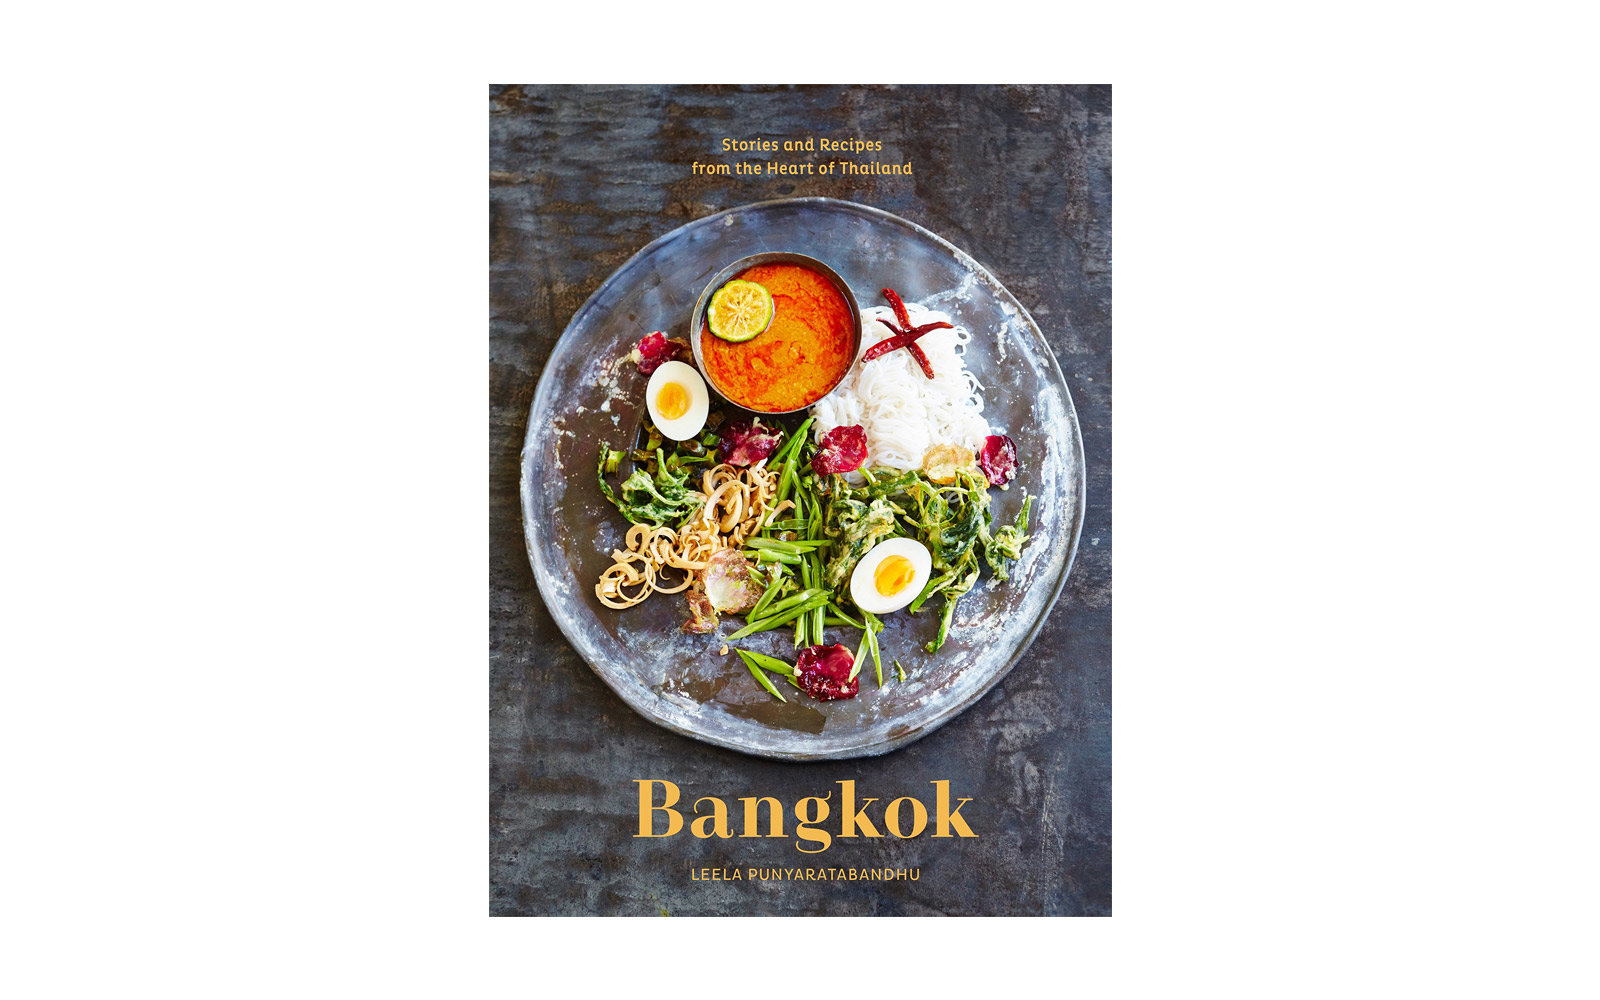 37 new international cookbooks for the traveling home cook travel bangkok recipes and stories from the heart of thailand forumfinder Gallery